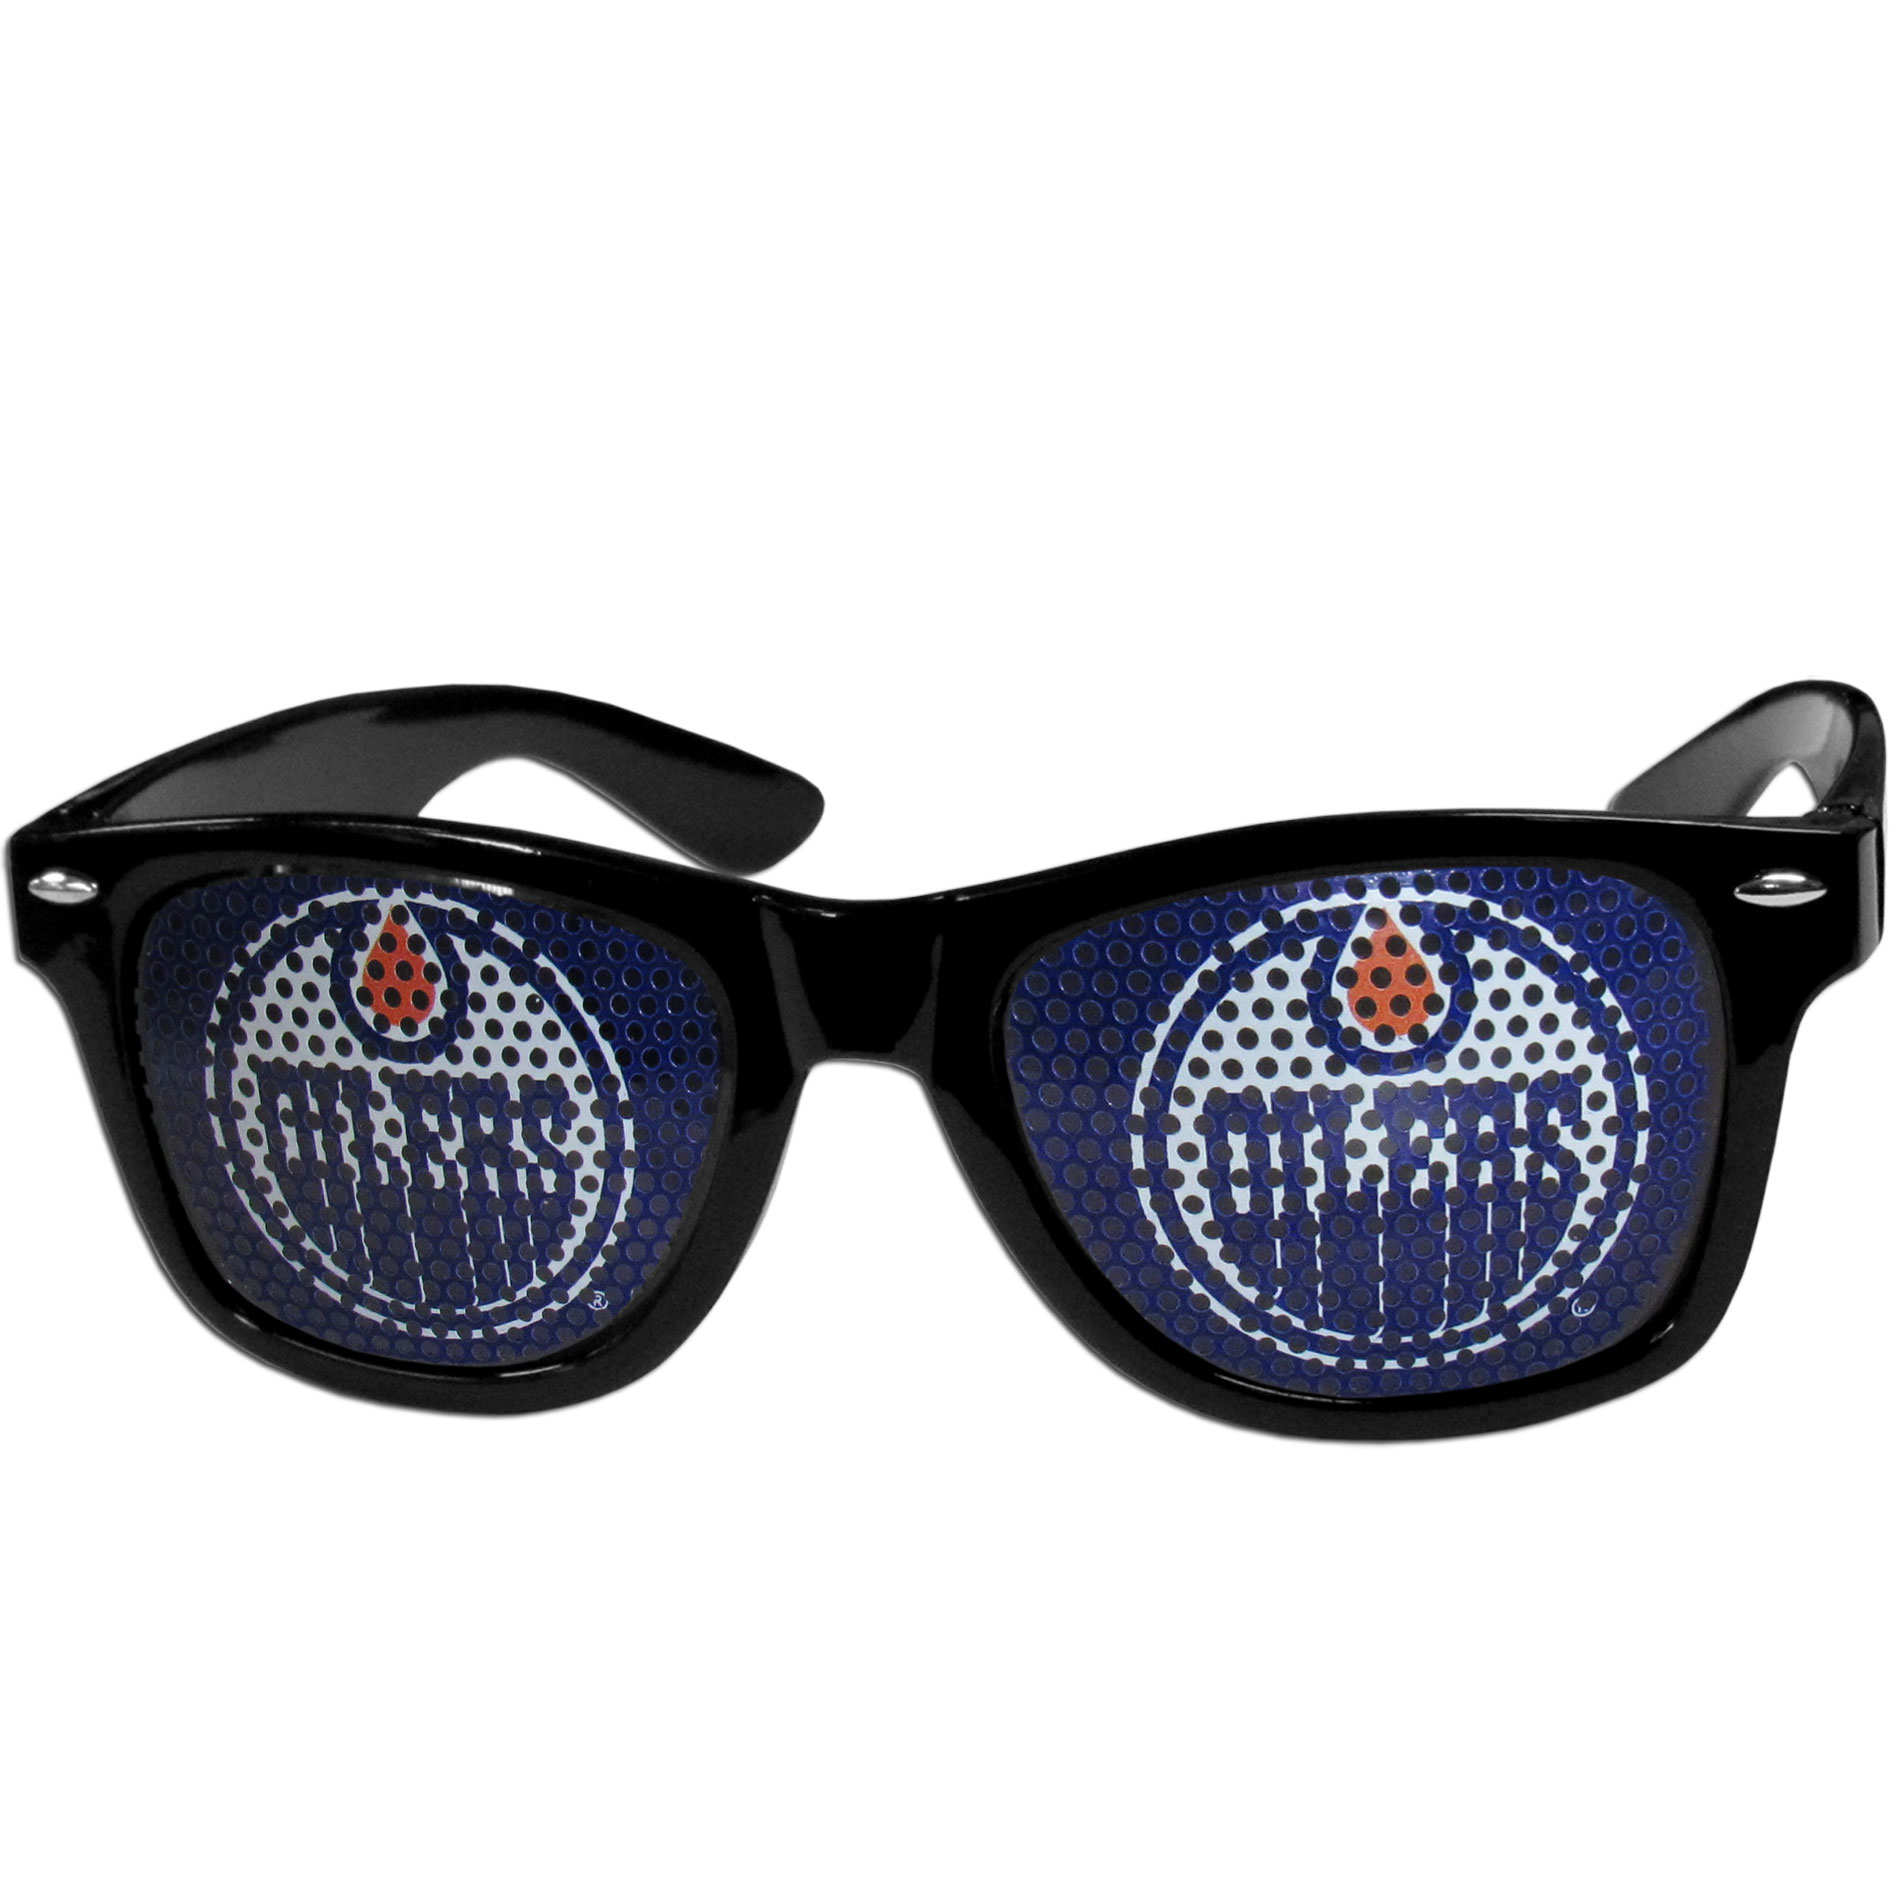 Edmonton Oilers Game Day Shades - Officially licensed Edmonton Oilers game day shades are the perfect accessory for the devoted Edmonton Oilers fan! The Edmonton Oilers game day shades have durable polycarbonate frames with flex hinges for comfort and damage resistance. The lenses feature brightly colored Edmonton Oilers clings that are perforated for visibility.